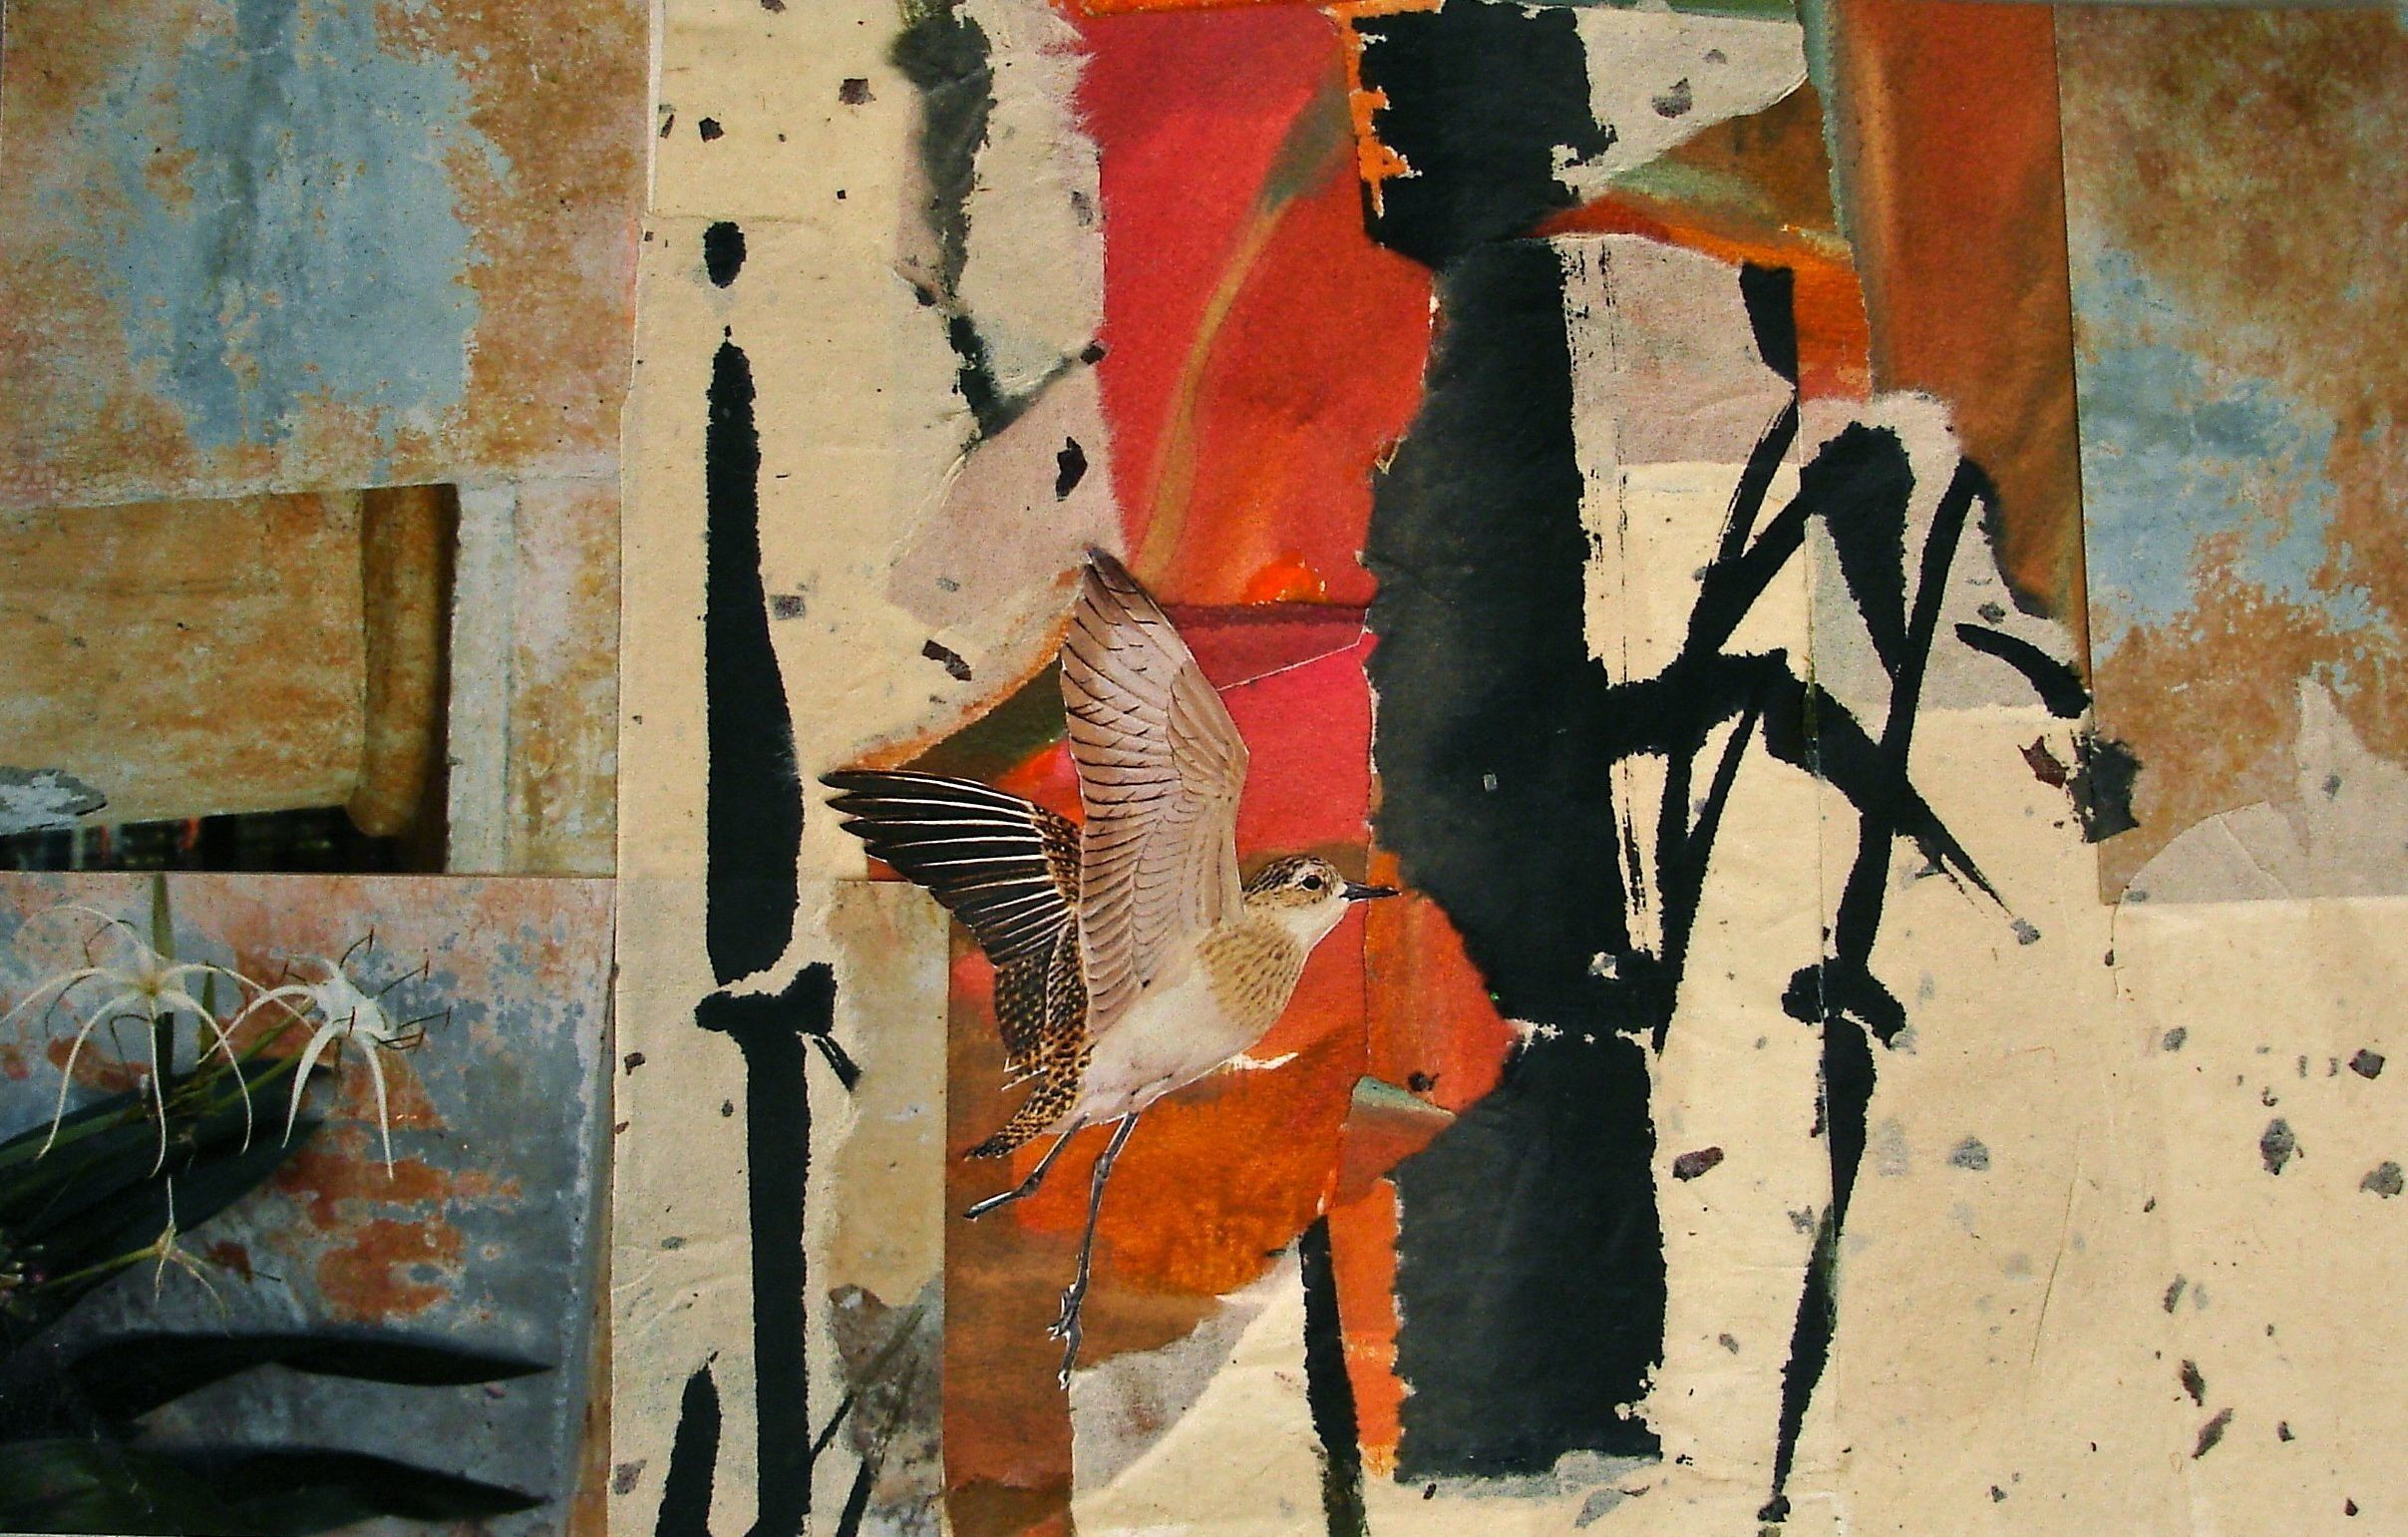 Journey East, collage by Lynne Friedman, 8x16